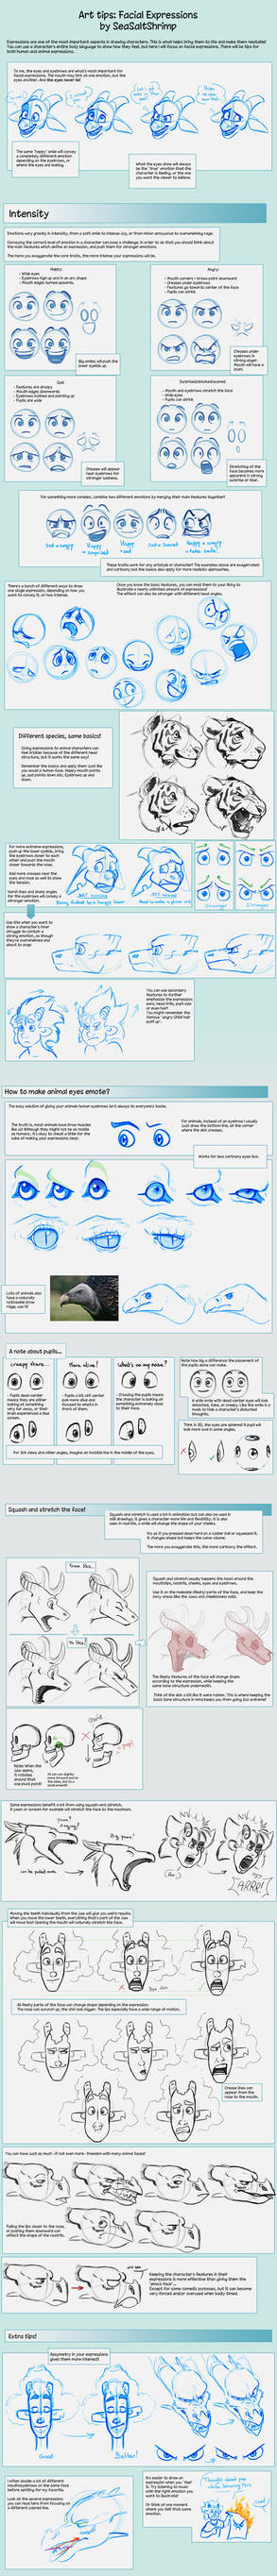 Art Tips on Facial Expressions